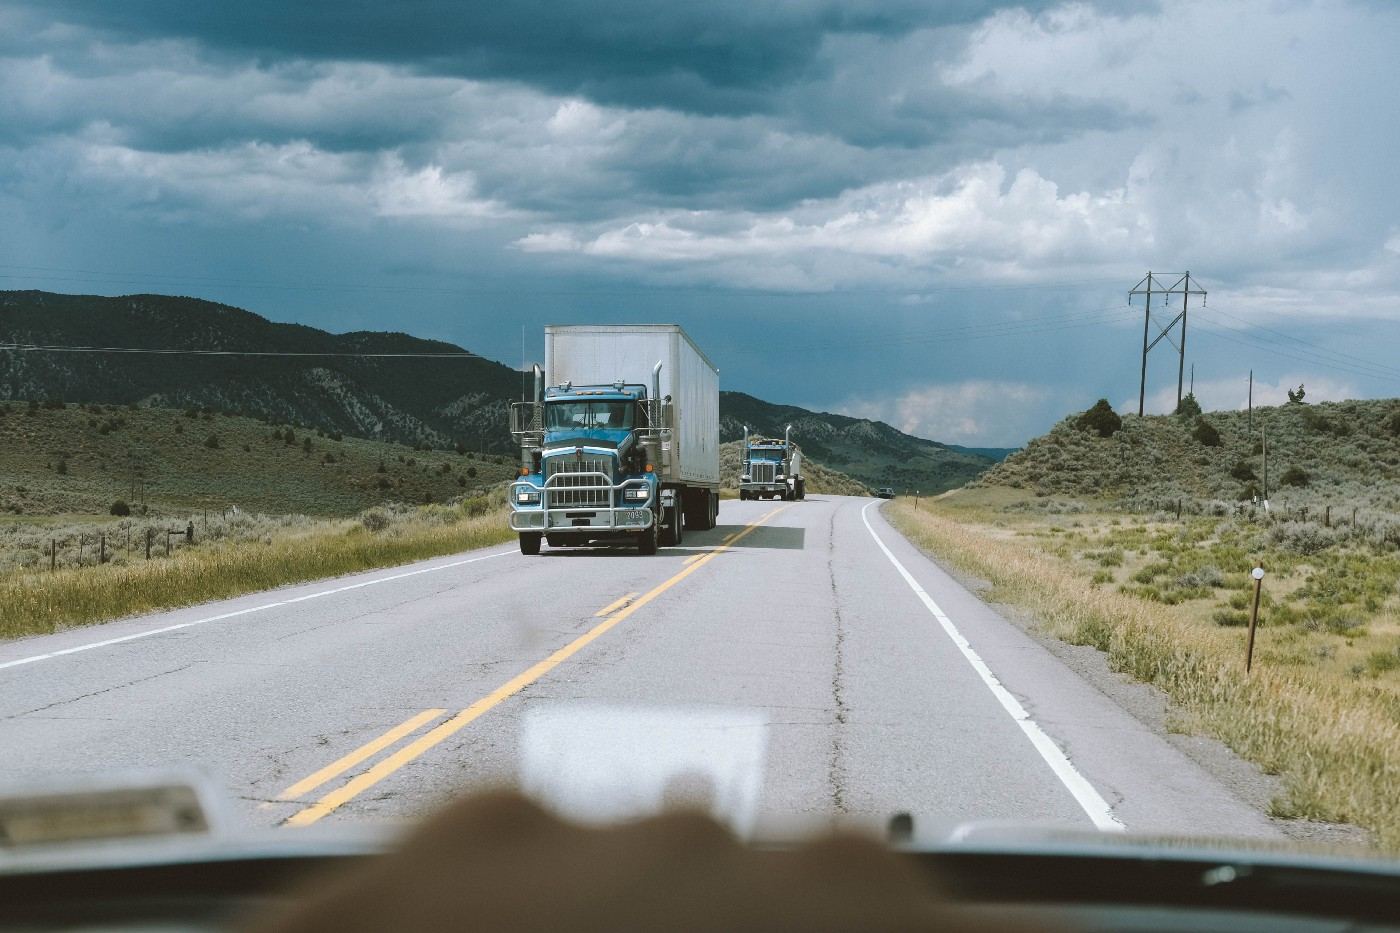 Two semi trucks drive down a highway to deliver their shipments while a car watches them.